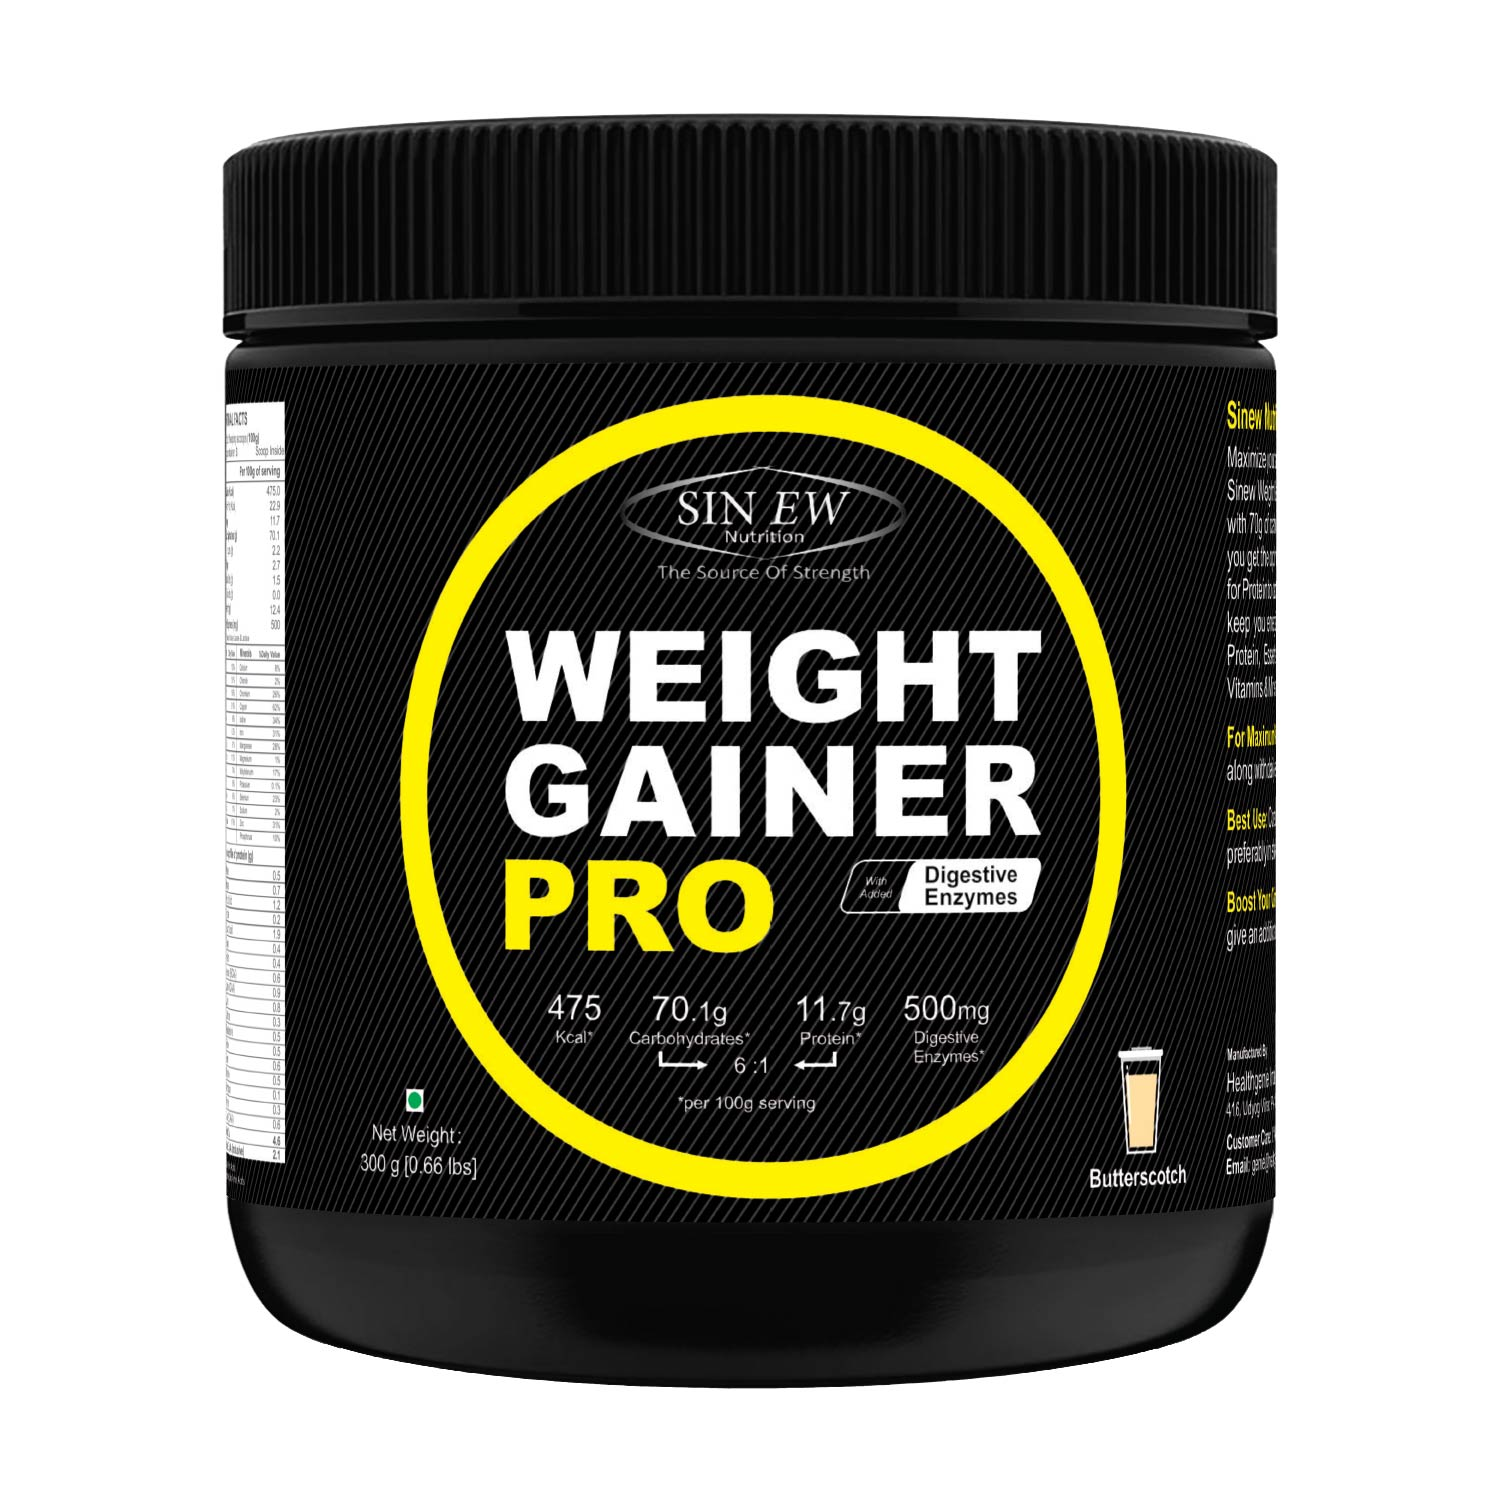 Weight Gainer Pro (butterscotch) 300 F